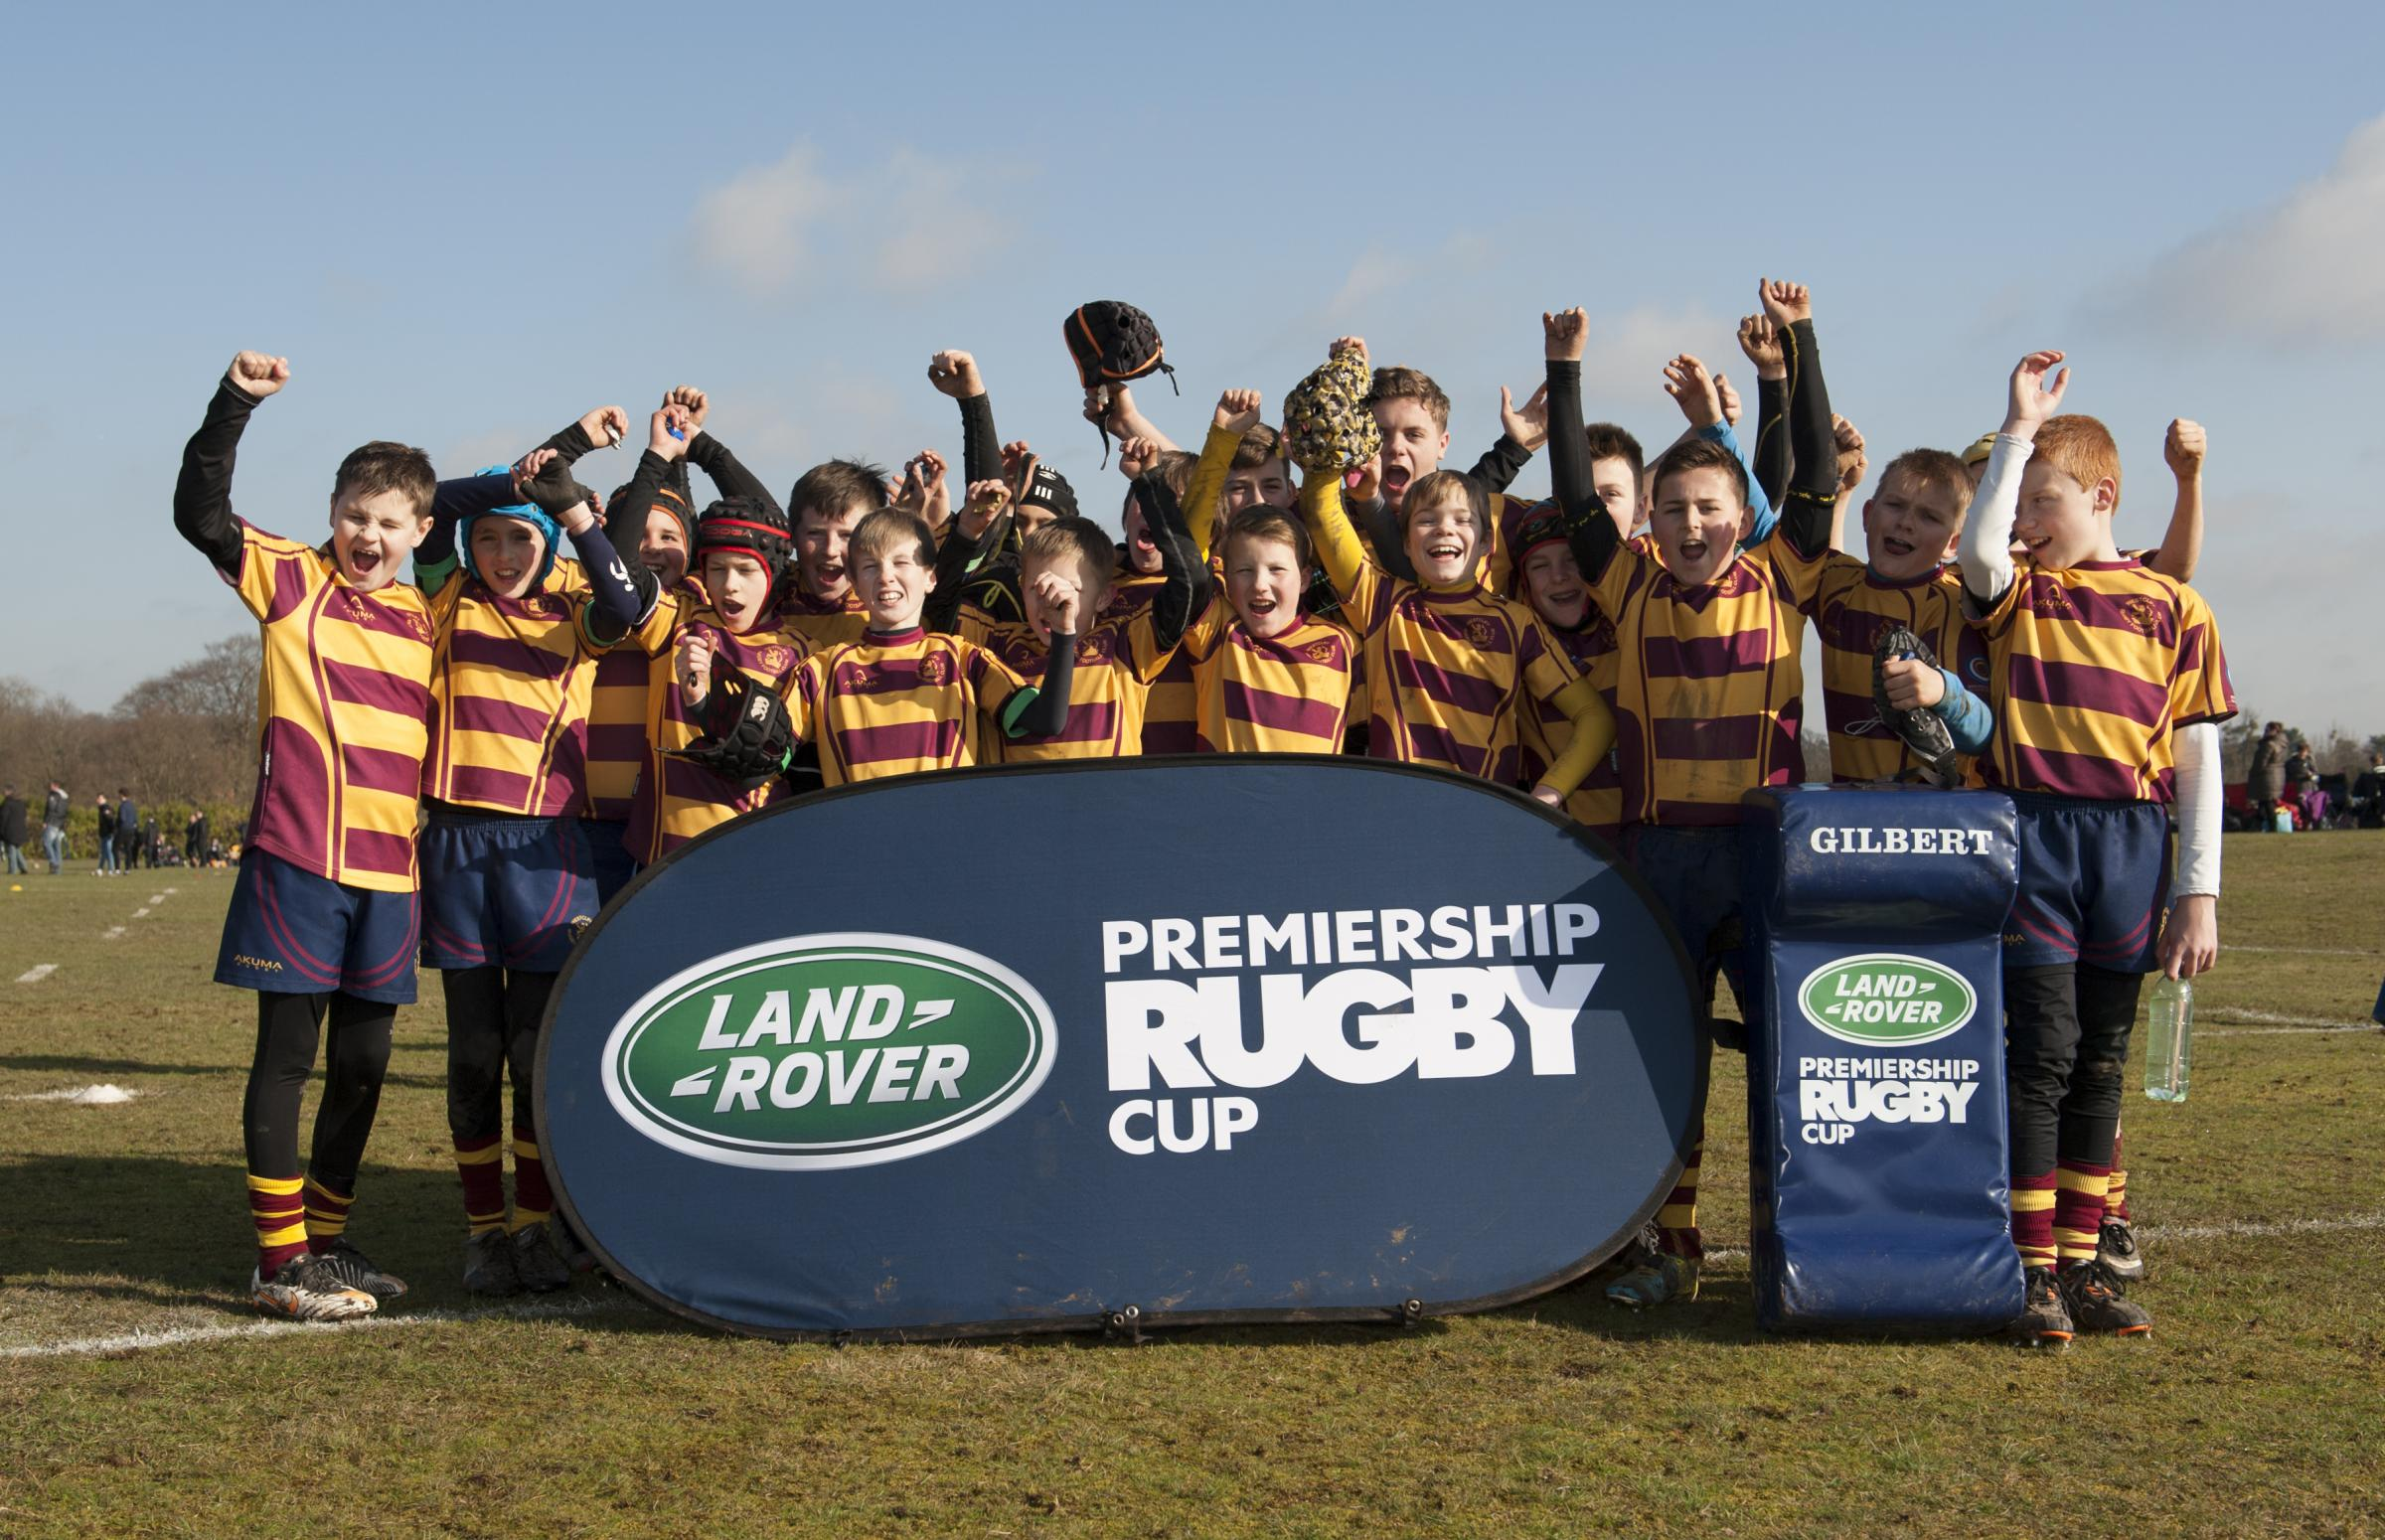 All smiles – the Westcliff under-12s team at Farnham Royal in the Land Rover Premiership Cup